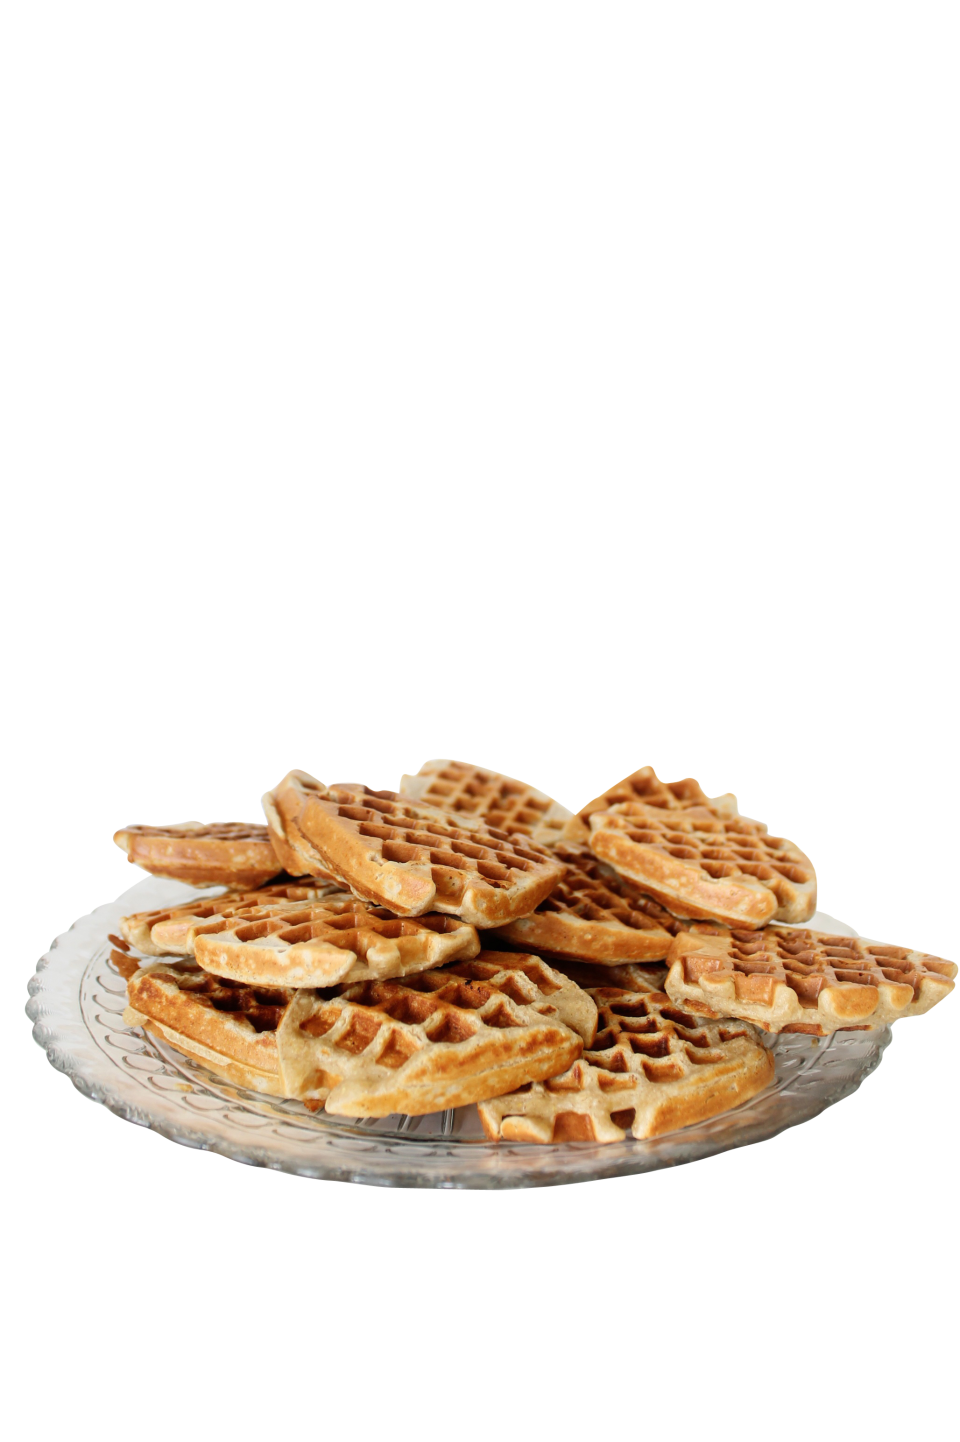 Baked Brown Waffles in a Plate PNG Image